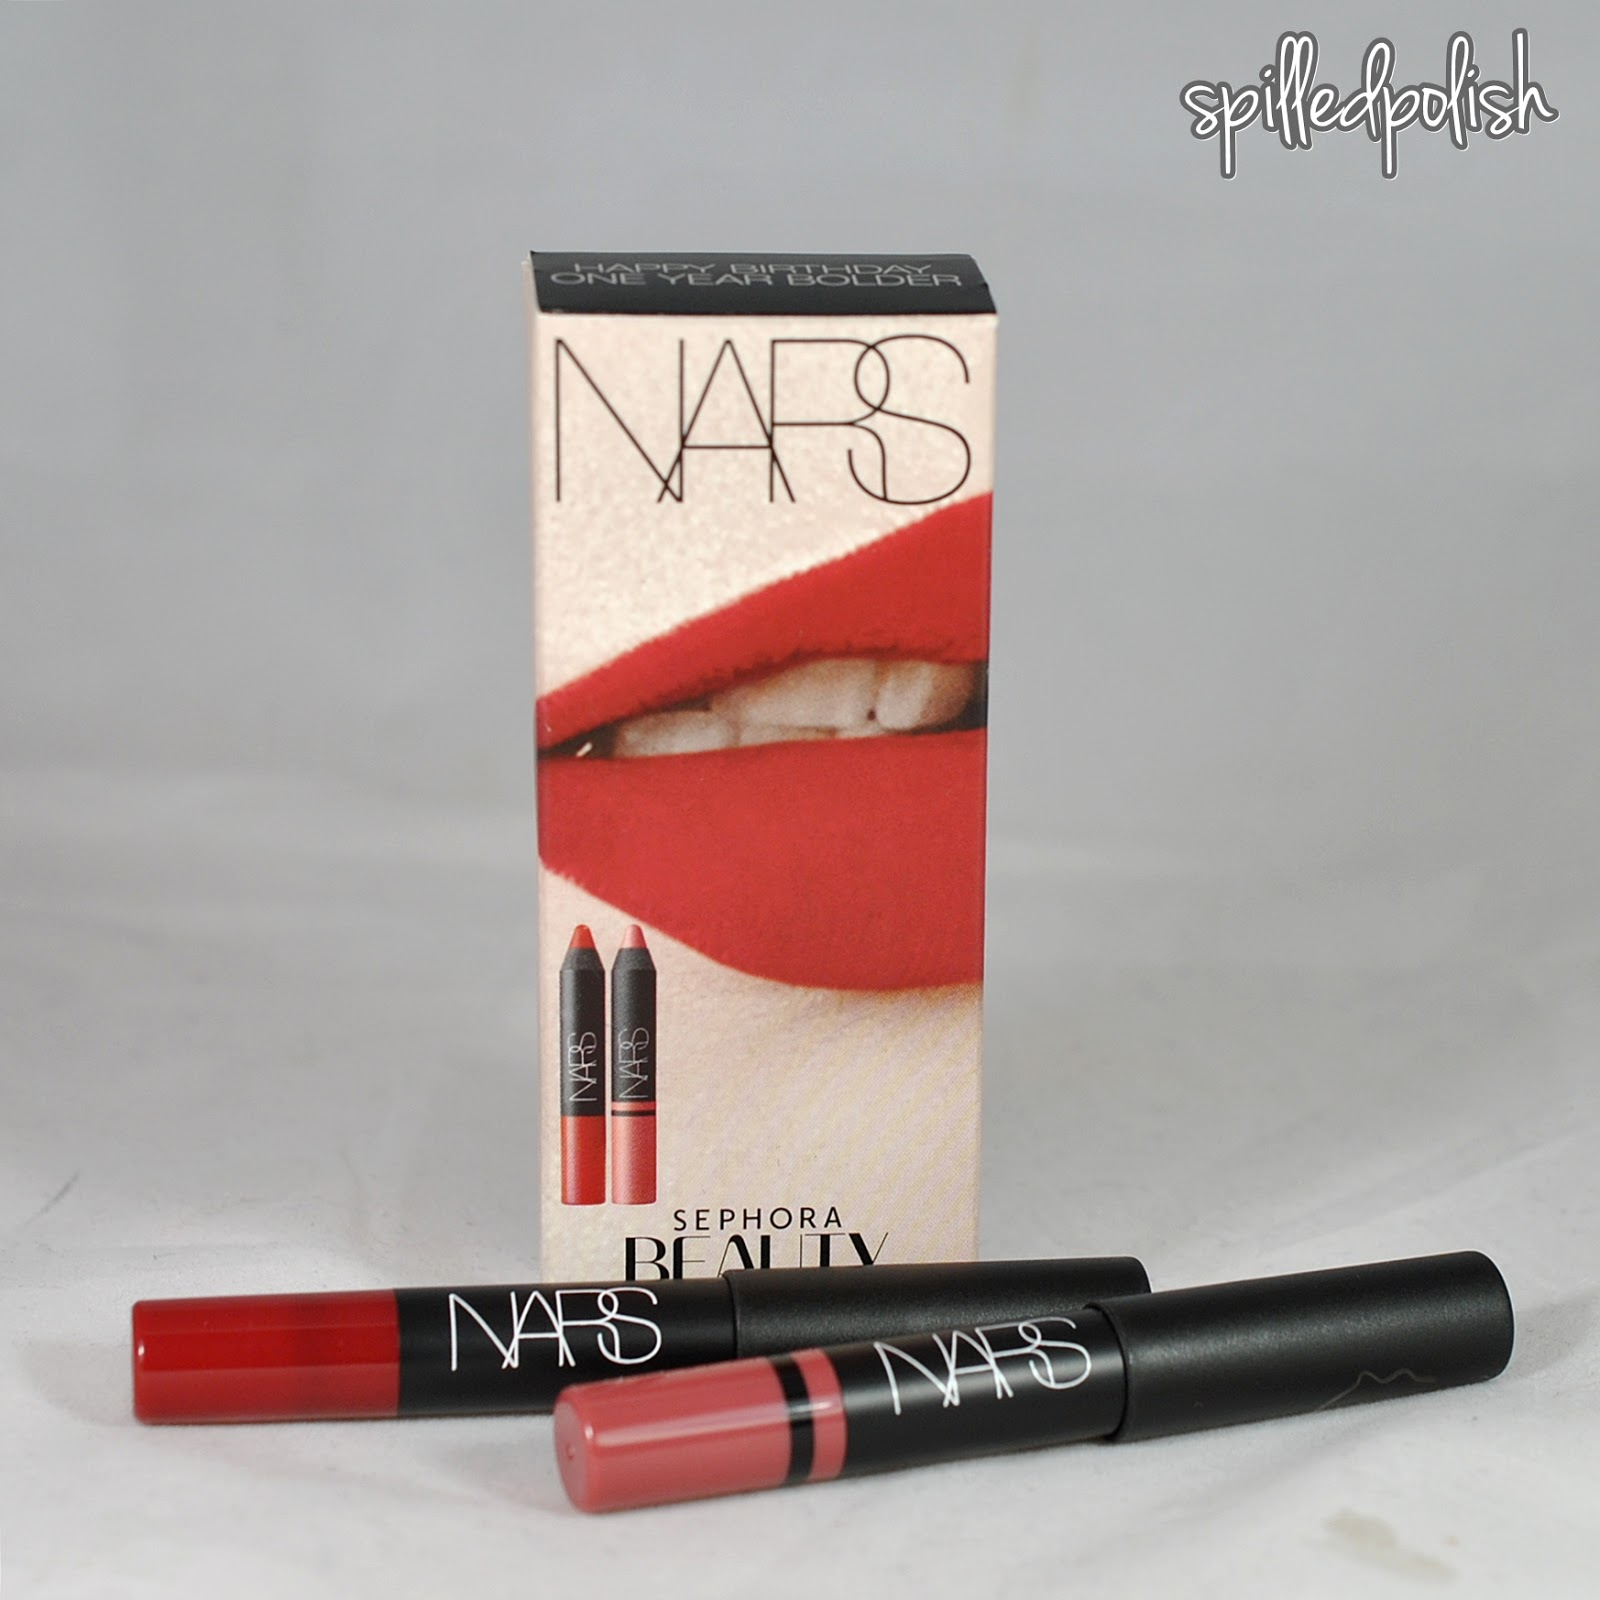 More Birthday Gifts Every Year Sephora Gives All Beauty Insiders A Free Gift This They Gifted Two Nars Lip Pencils